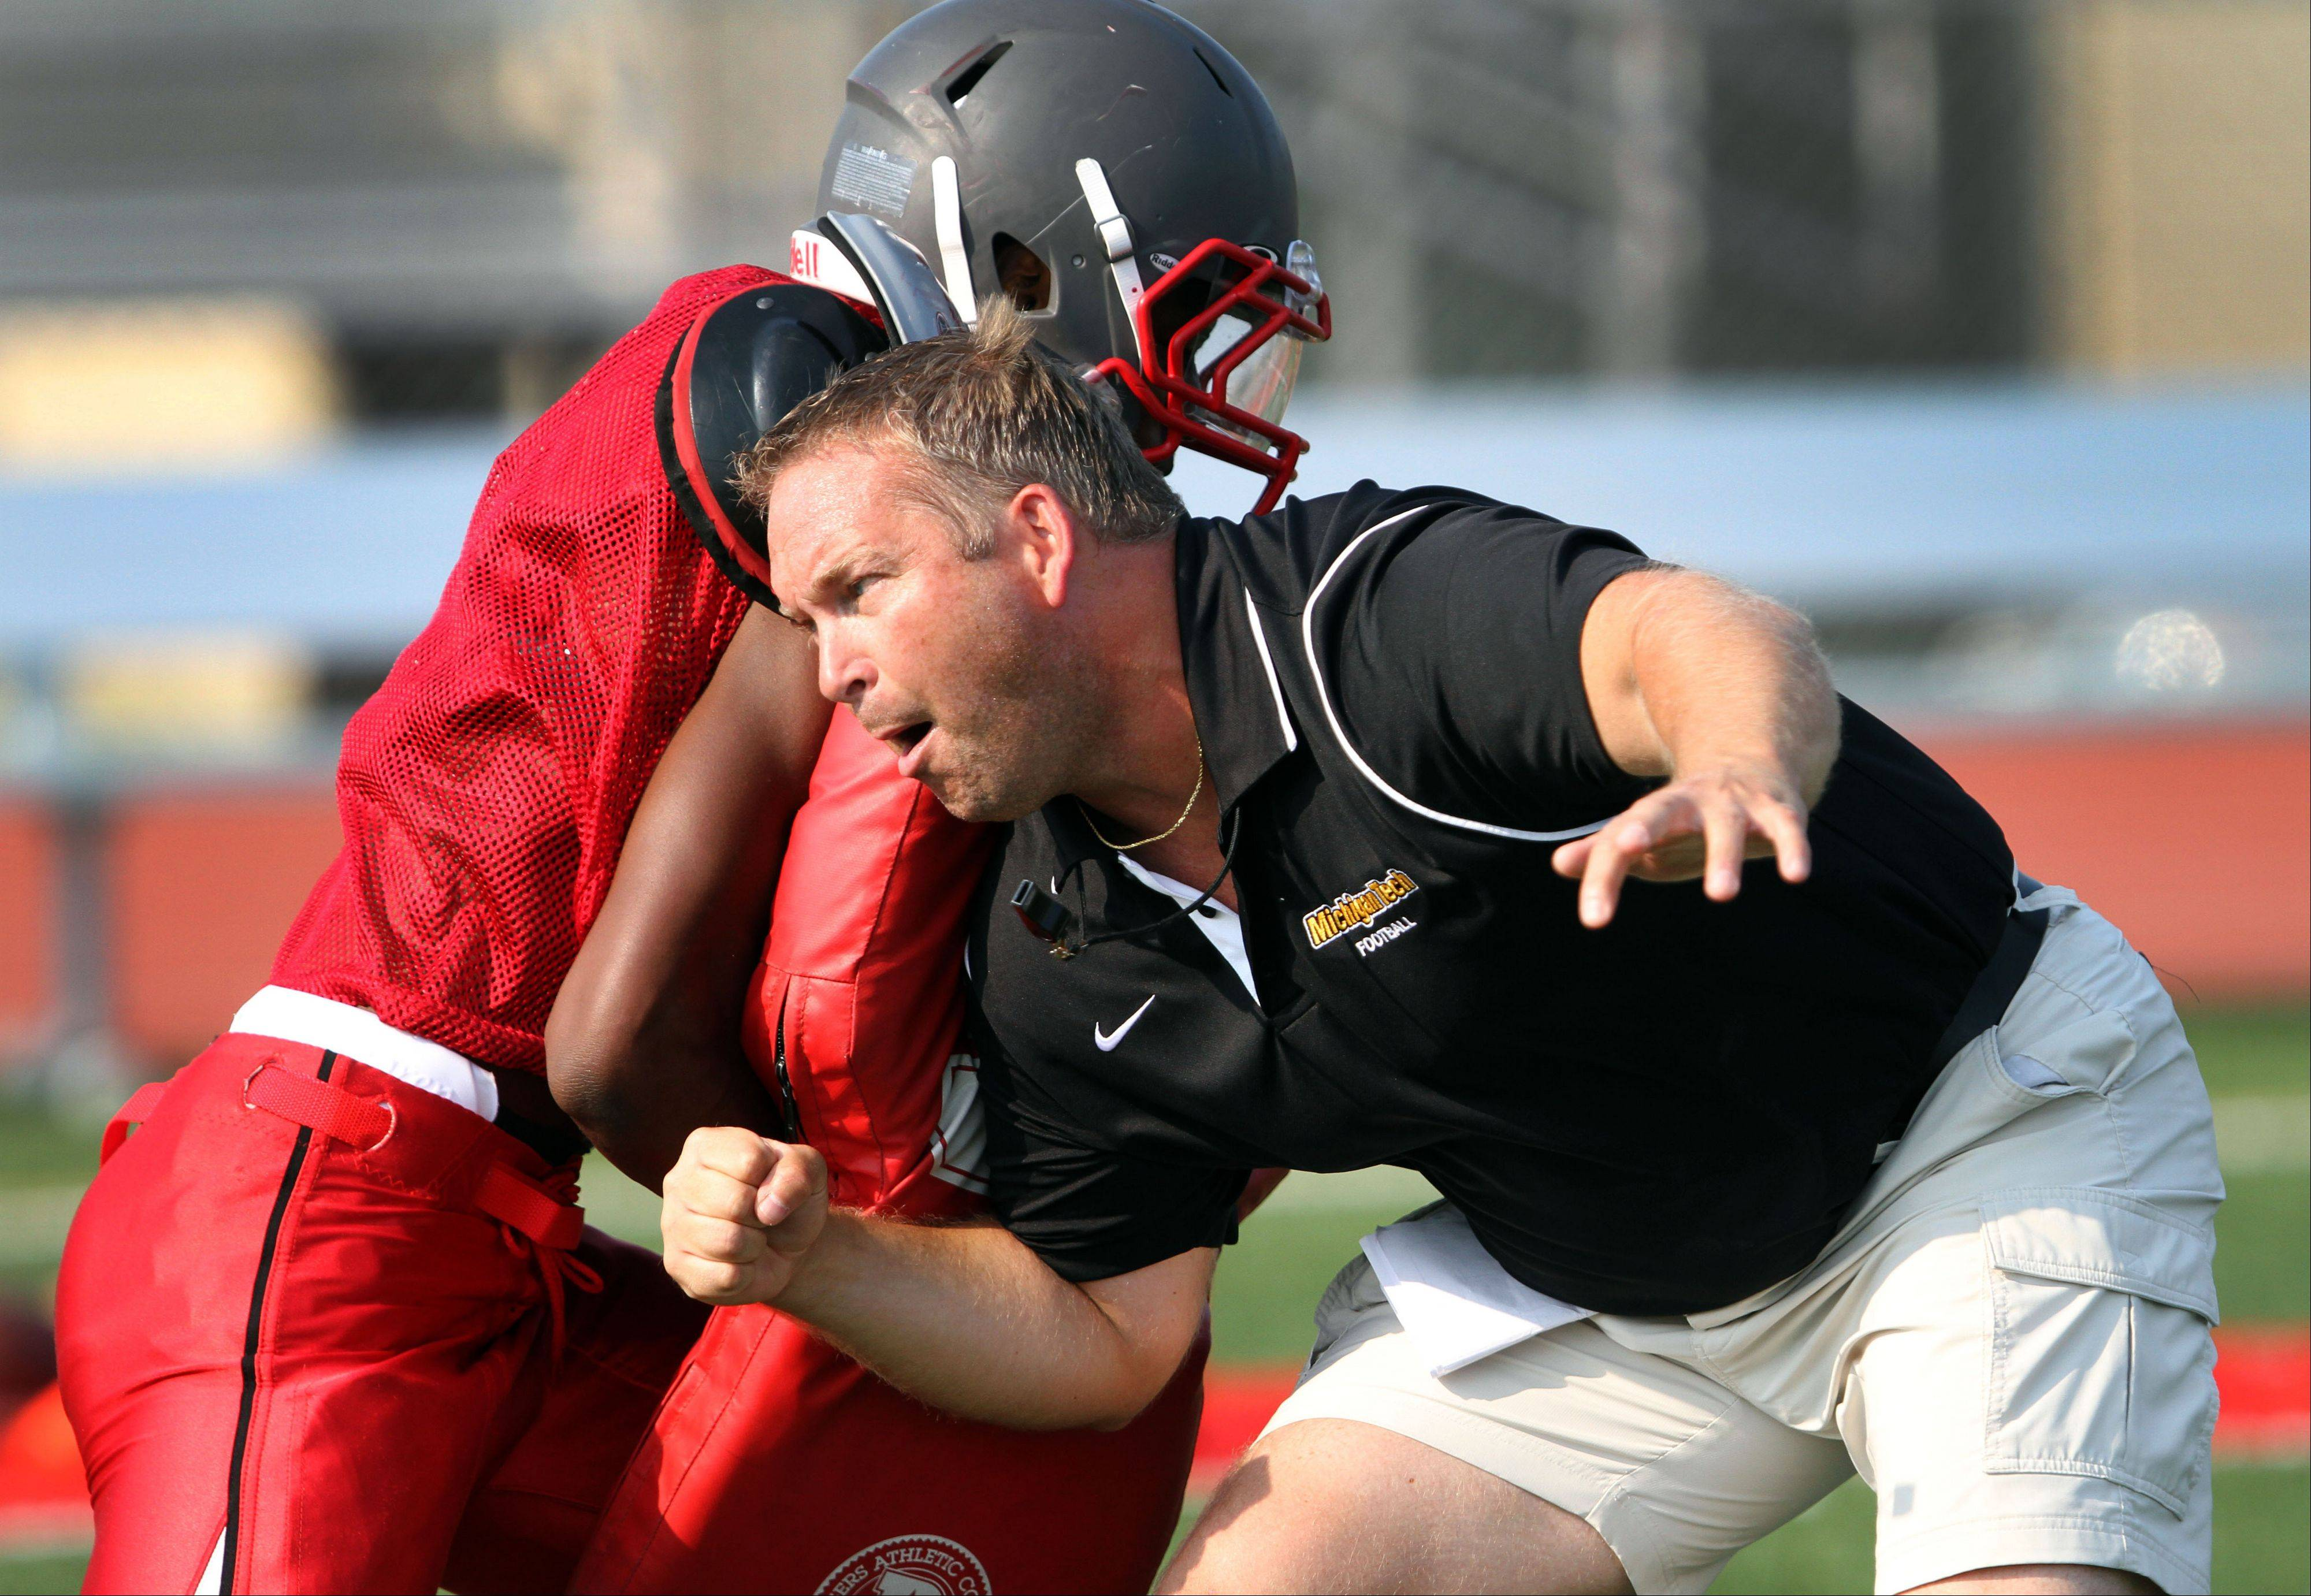 Coach George Kaider gets personally involved in Mundelein�s success in practice Tuesday at Mundelein.